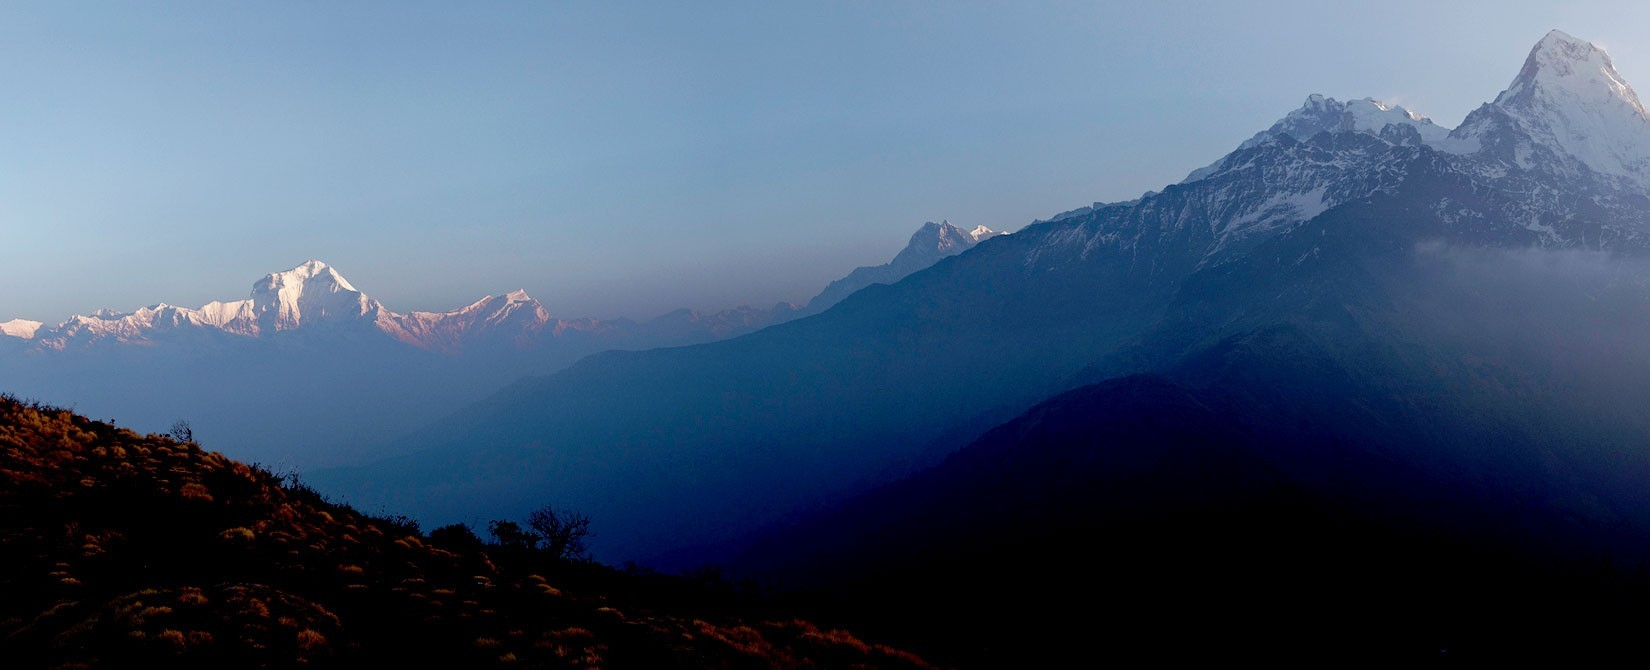 Annapurna Range from Muldea Viewpoint